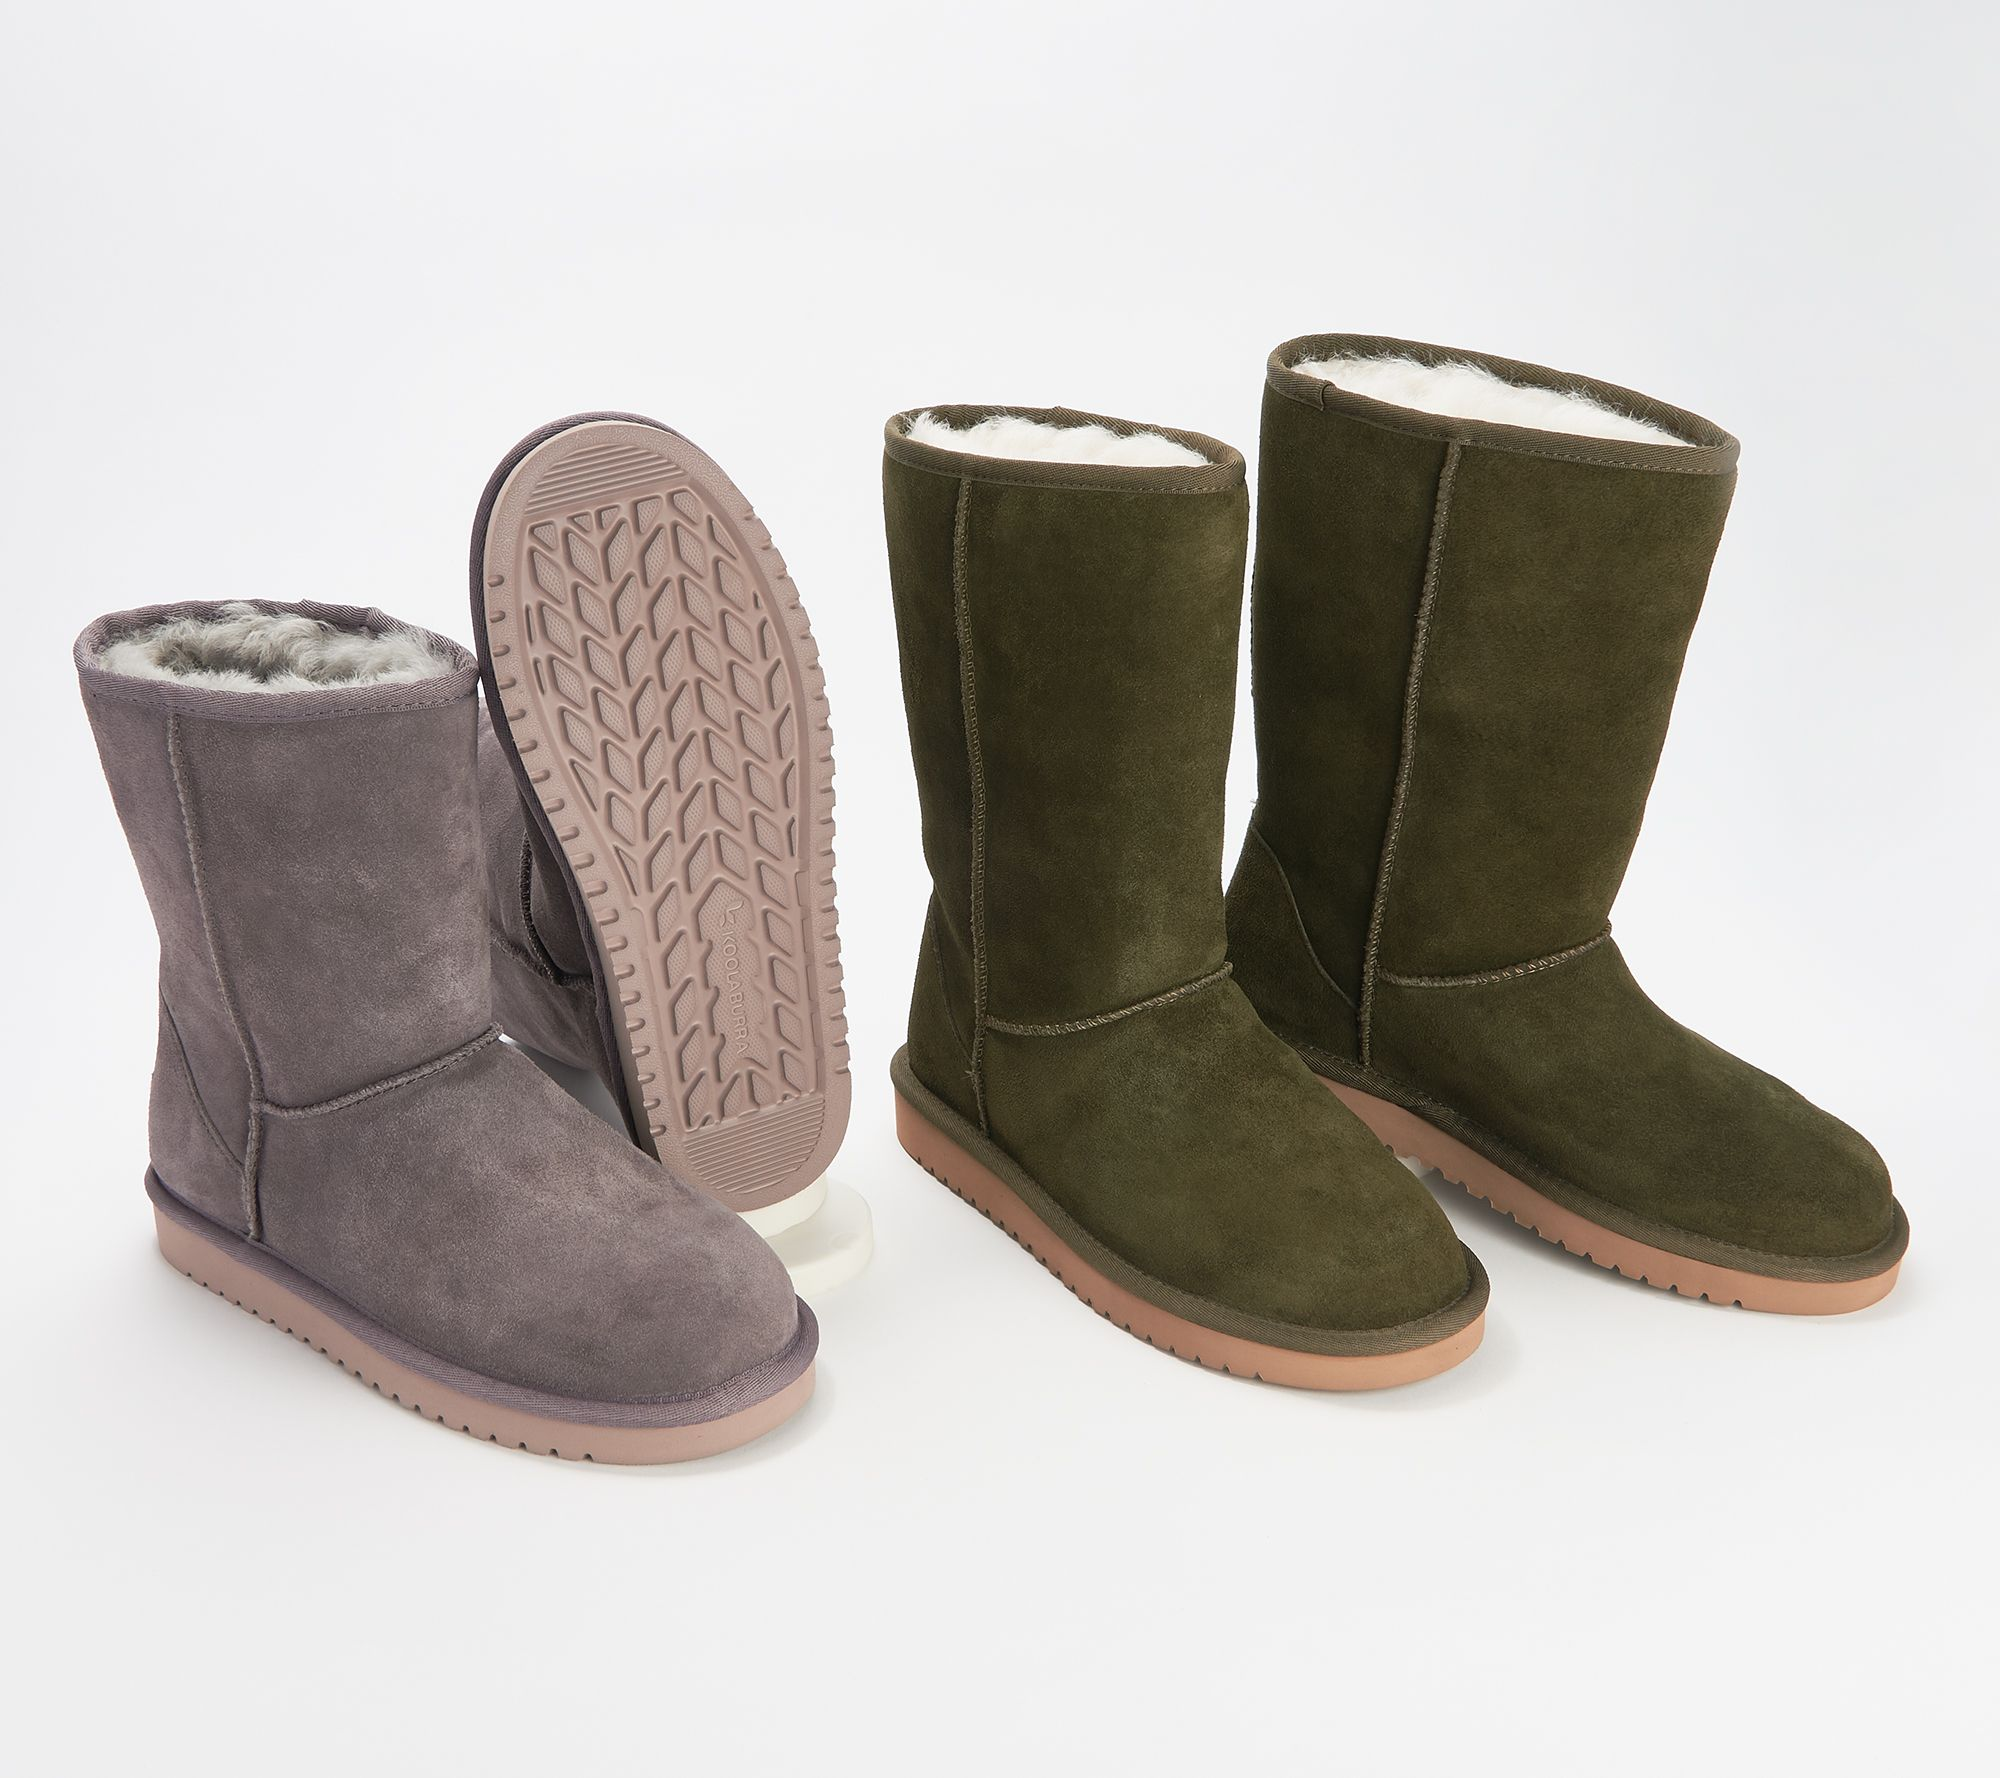 1282f0bd466 Koolaburra by UGG Choice of Suede Tall or Short Boots - Koola — QVC.com